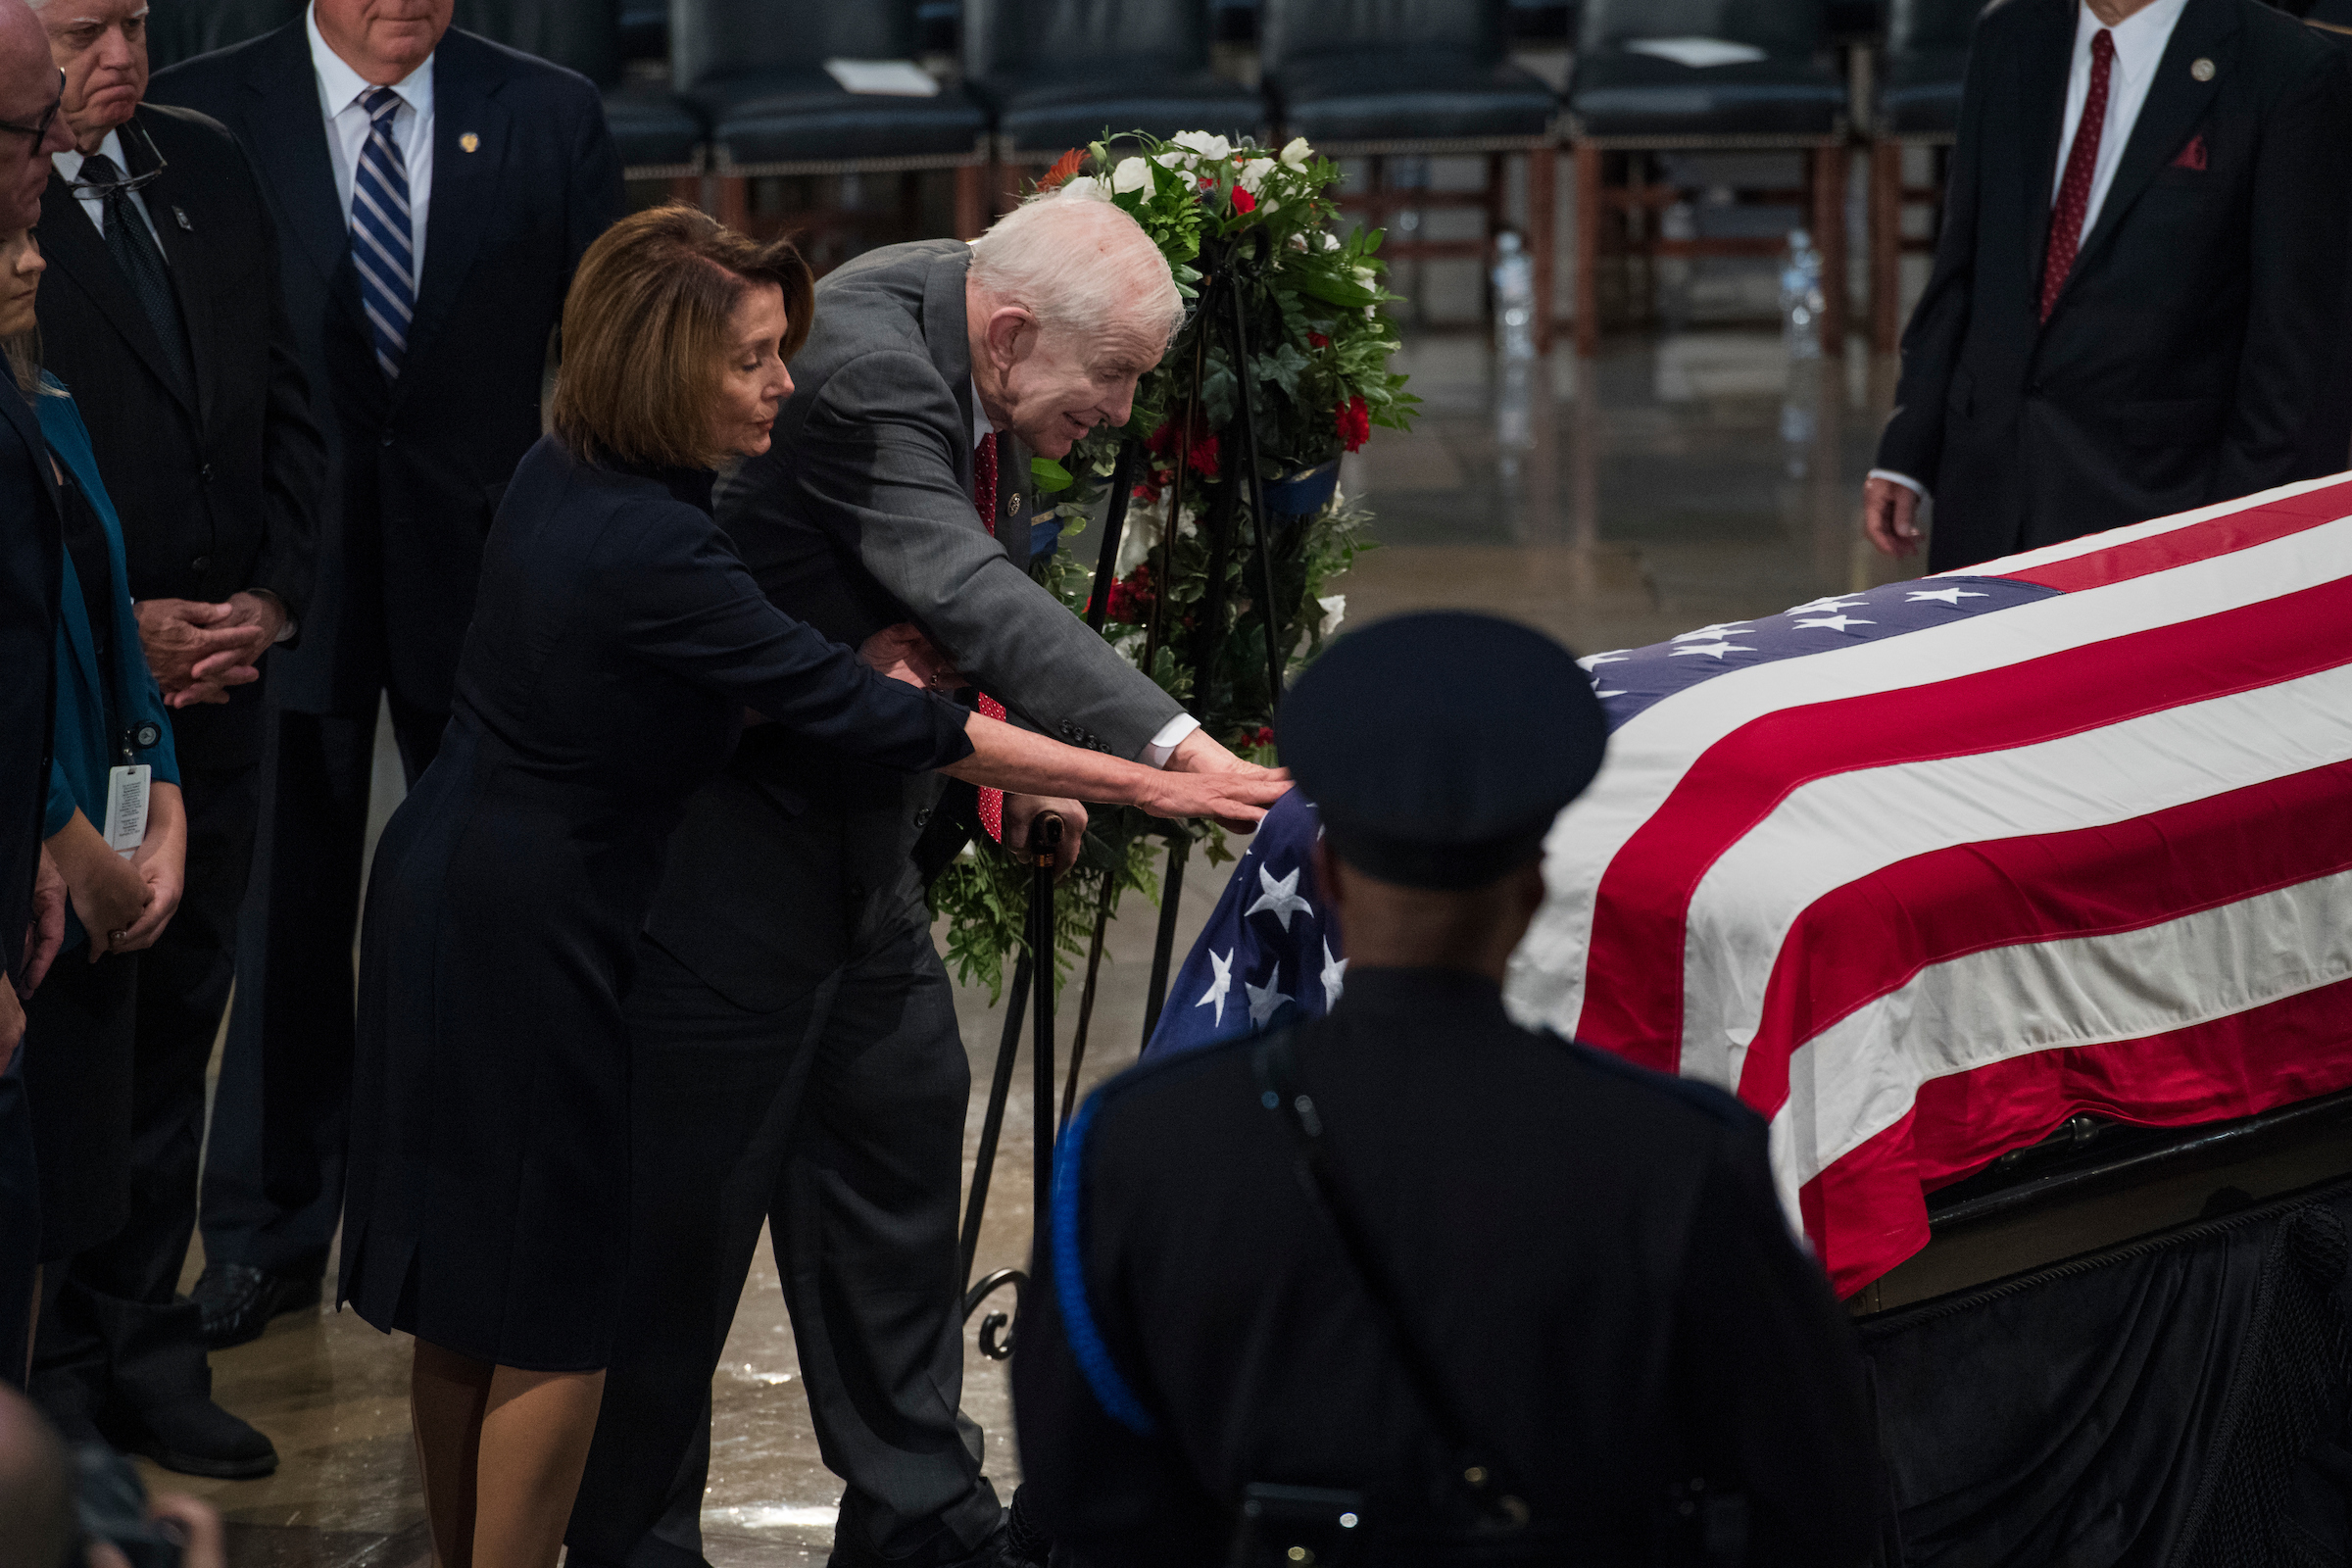 UNITED STATES - AUGUST 31: Rep. Sam Johnson, R-Texas, and House Minority Leader Nancy Pelosi, D-Calif., pay respects to the late Sen. John McCain, R-Ariz., as the senator lies in state in the Capitol rotunda on August 31, 2018. Johnson was also a prisoner of war during the Vietnam War. (Photo By Tom Williams/CQ Roll Call)